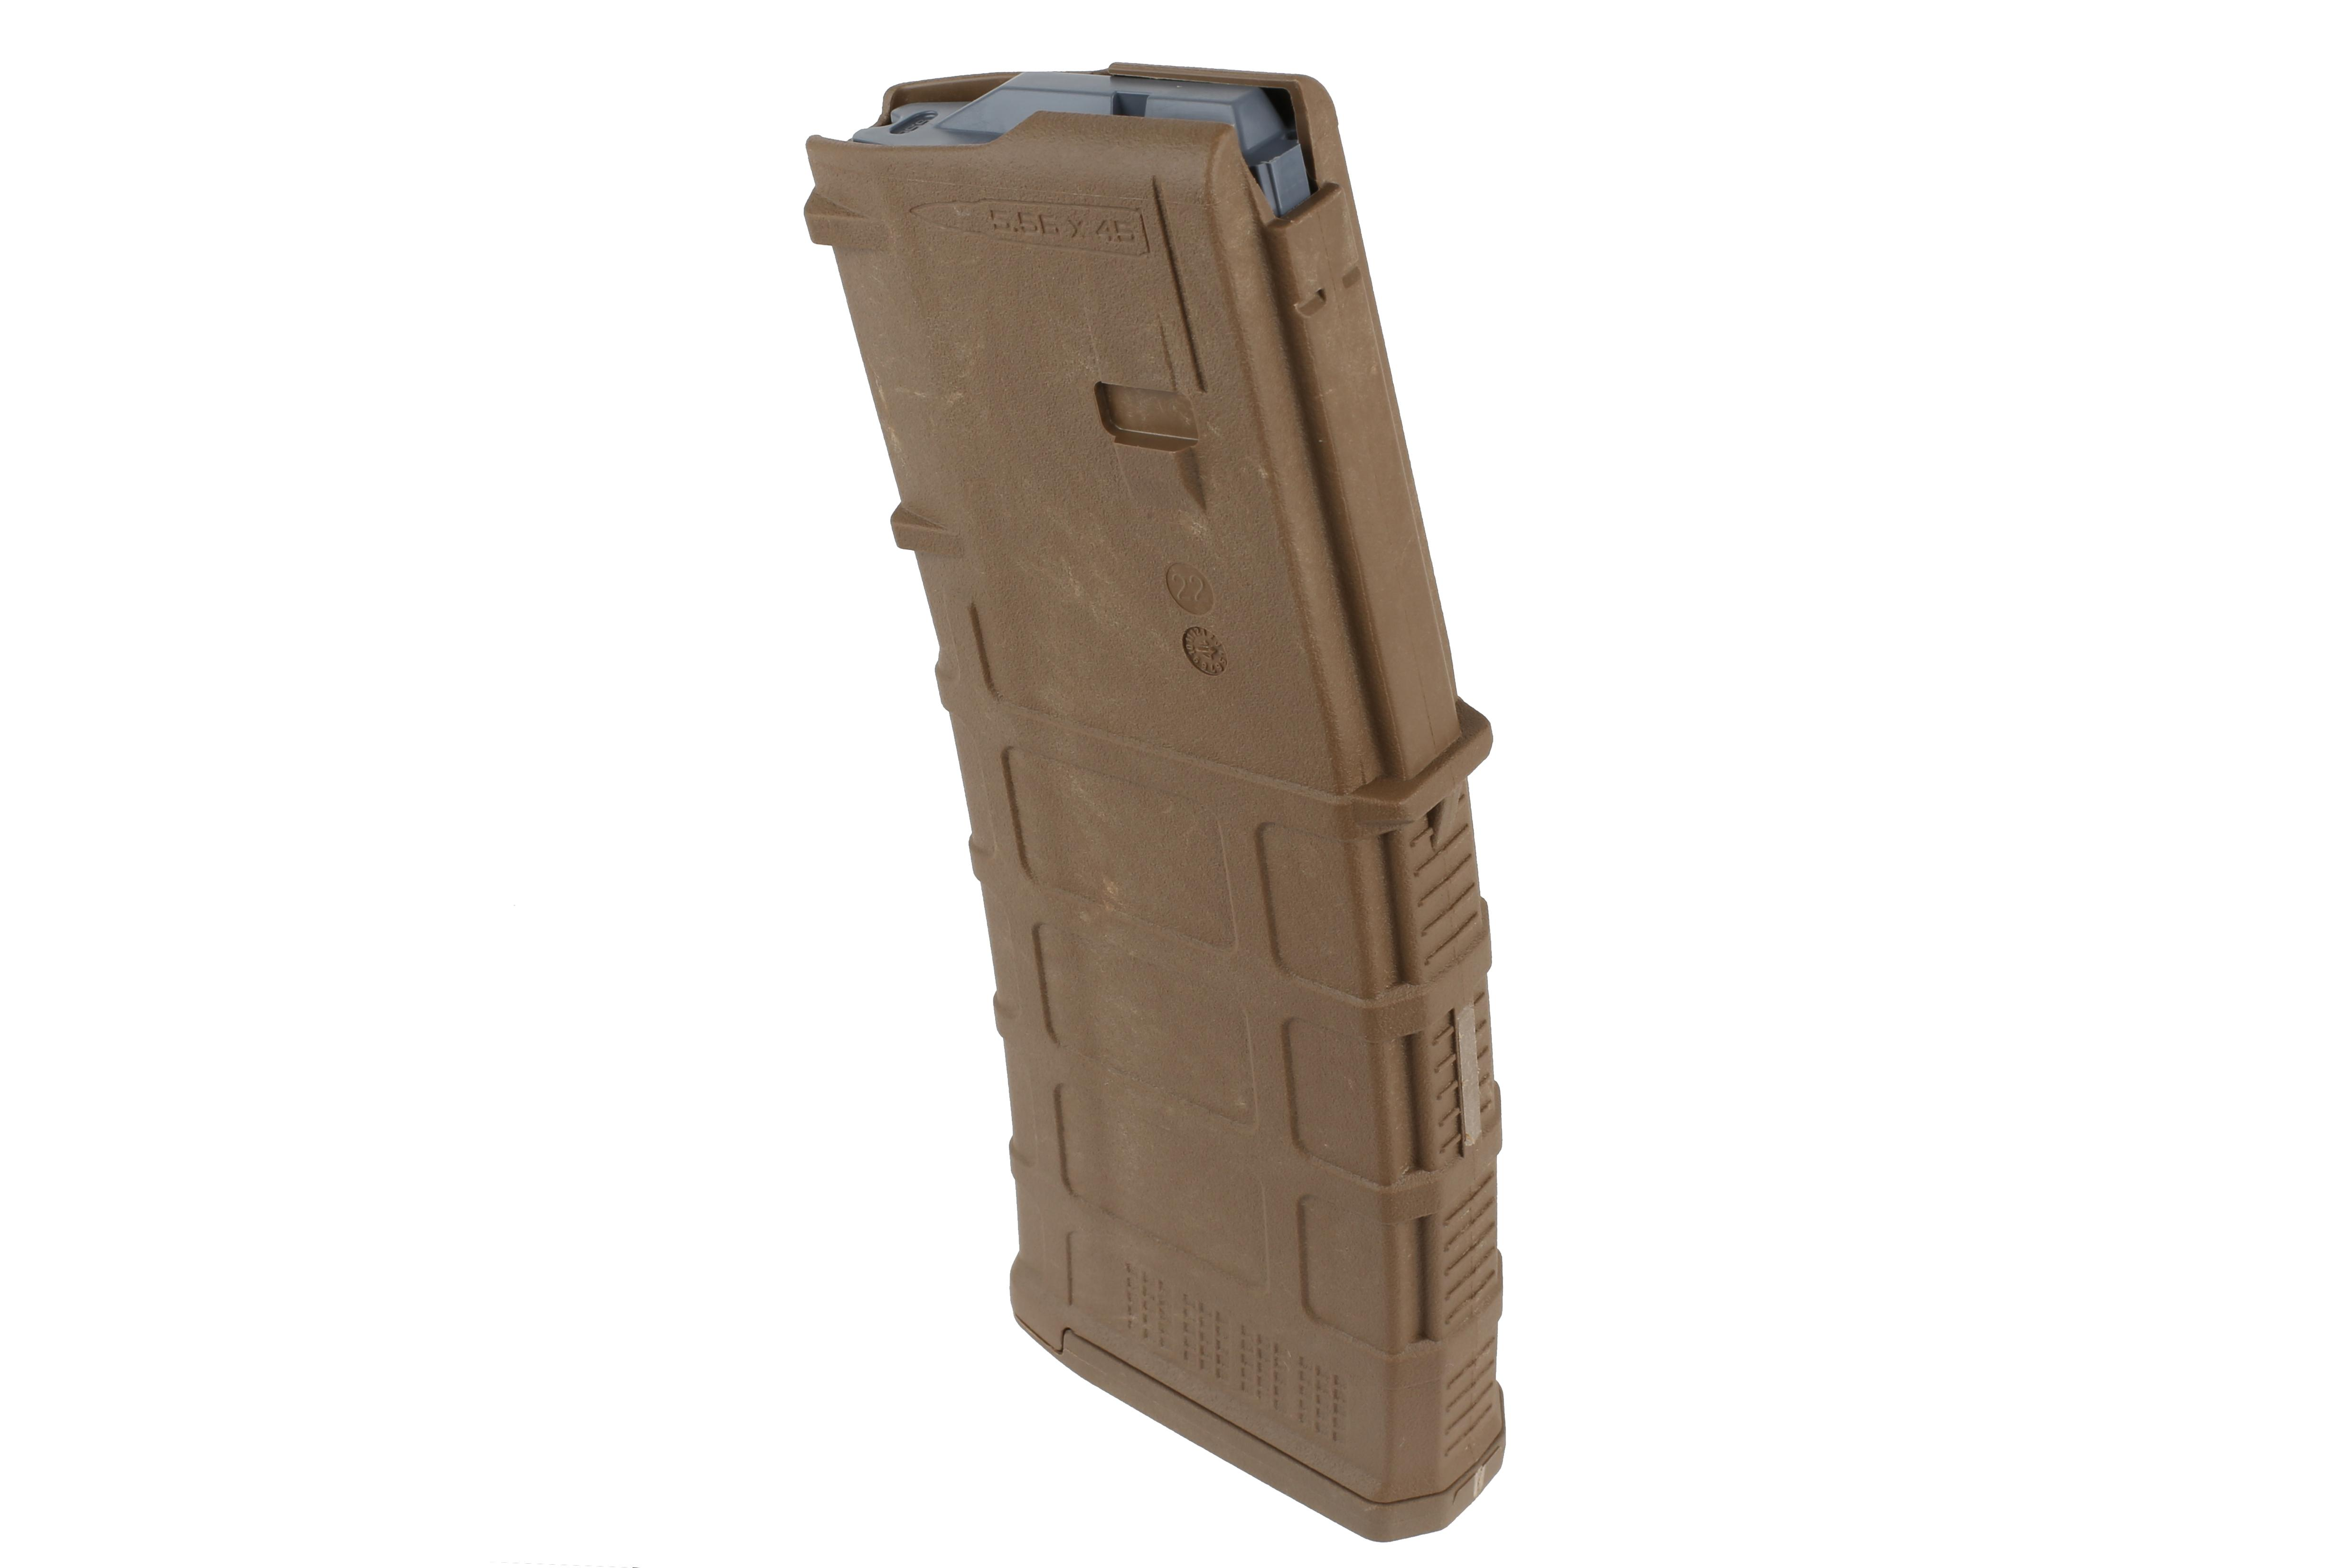 The PMAG 30 AR15 and M4 GEN M3 5.56 NATO Magpul Magazine features reinforced feed lips and lubricated follower